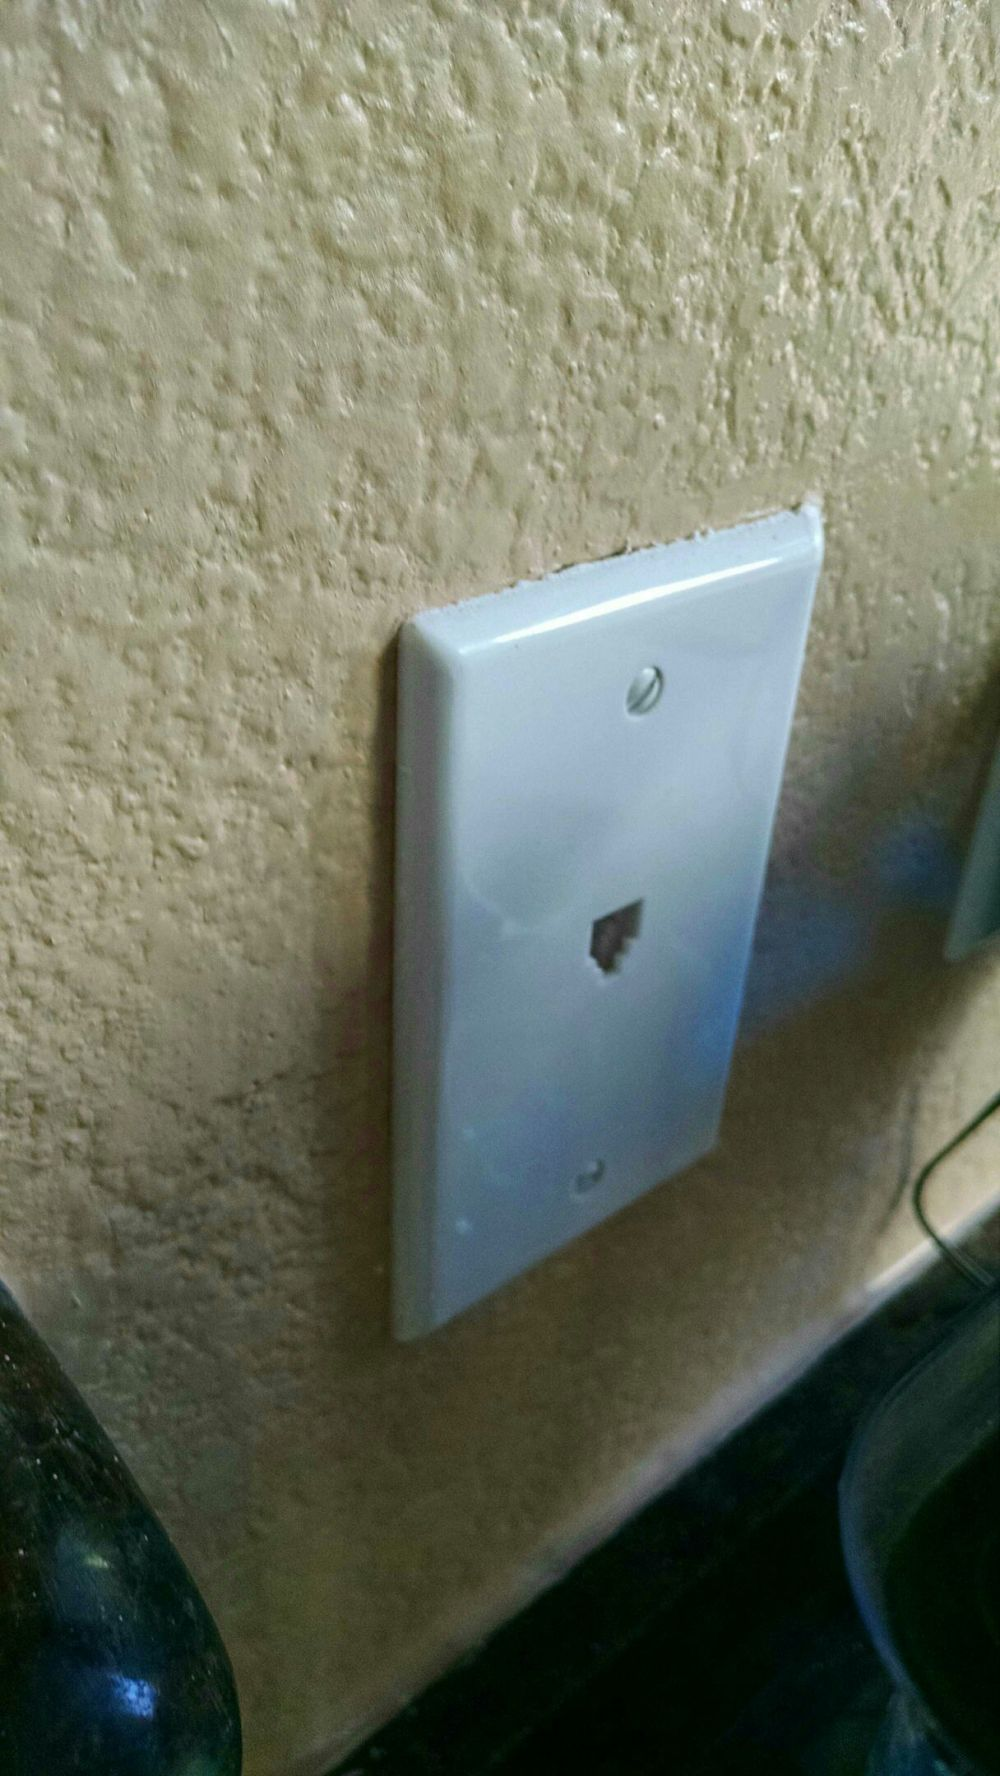 medium resolution of  the wall next to a regular power outlet and convert the phone jack to charge usb my phone jack doesn t get used and i want to make the outlet useful